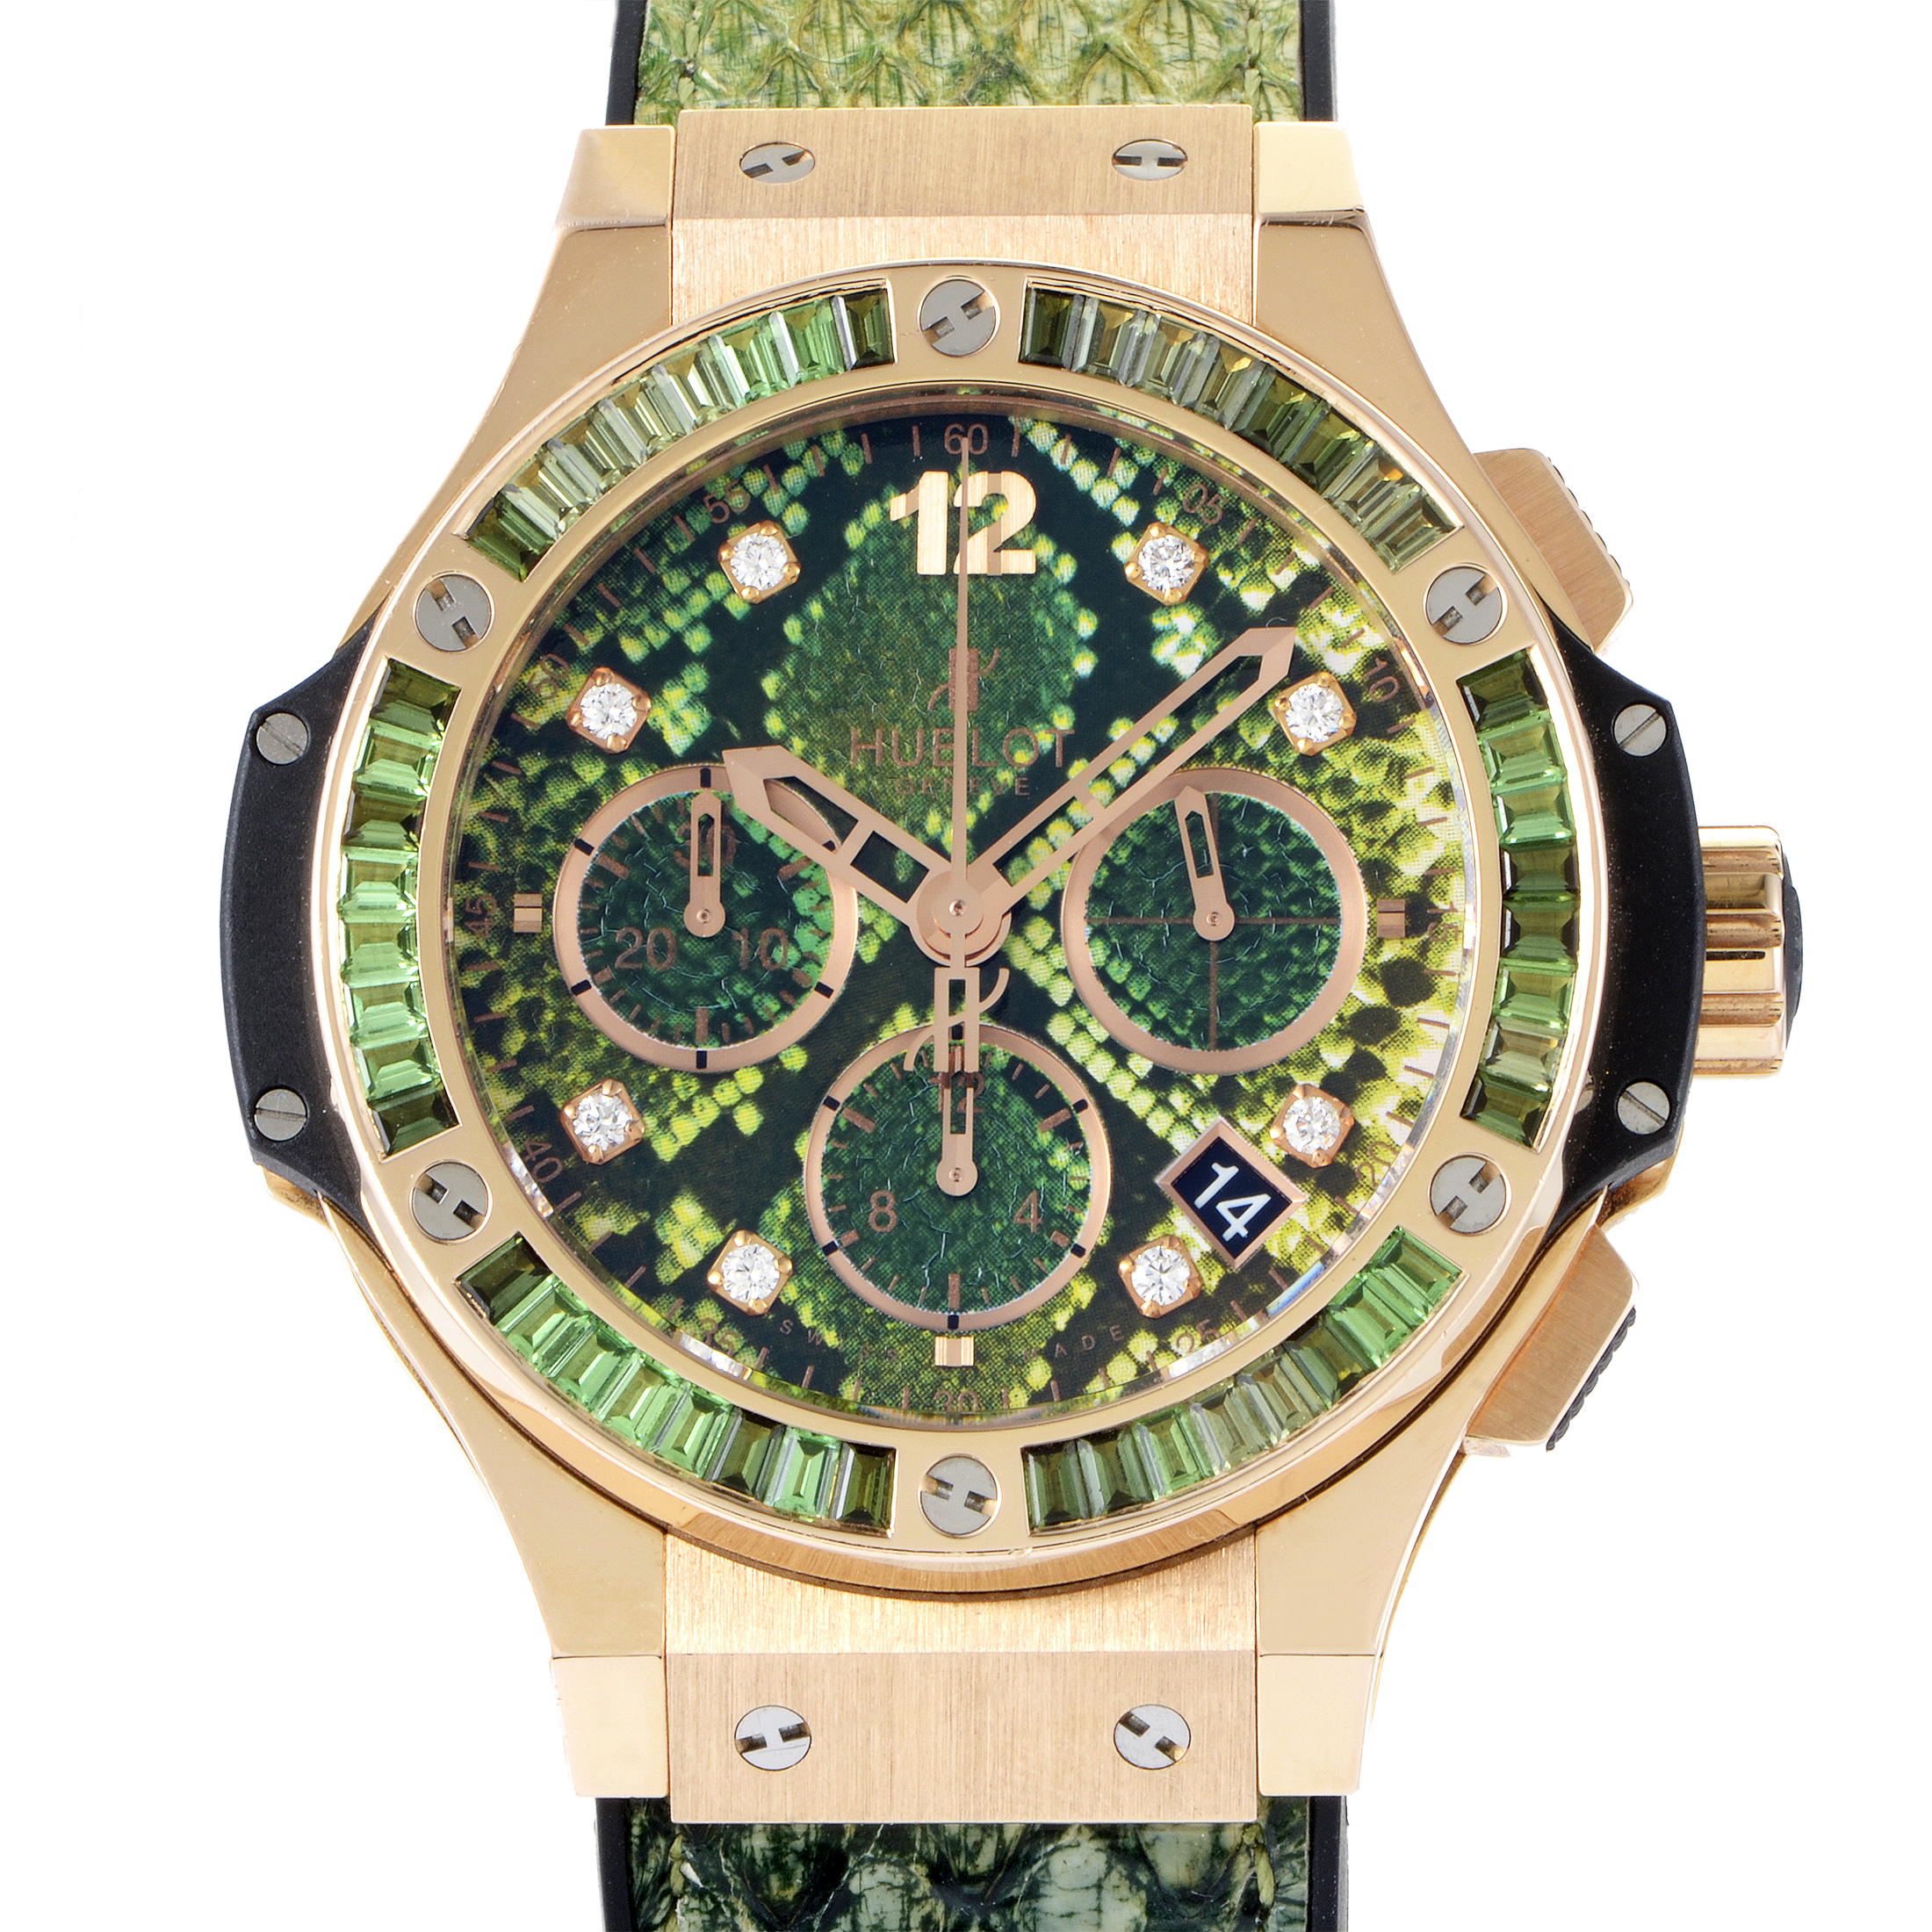 Boa Big Bang Green Automatic Chronograph Watch 341.PX.7818.PR.1978